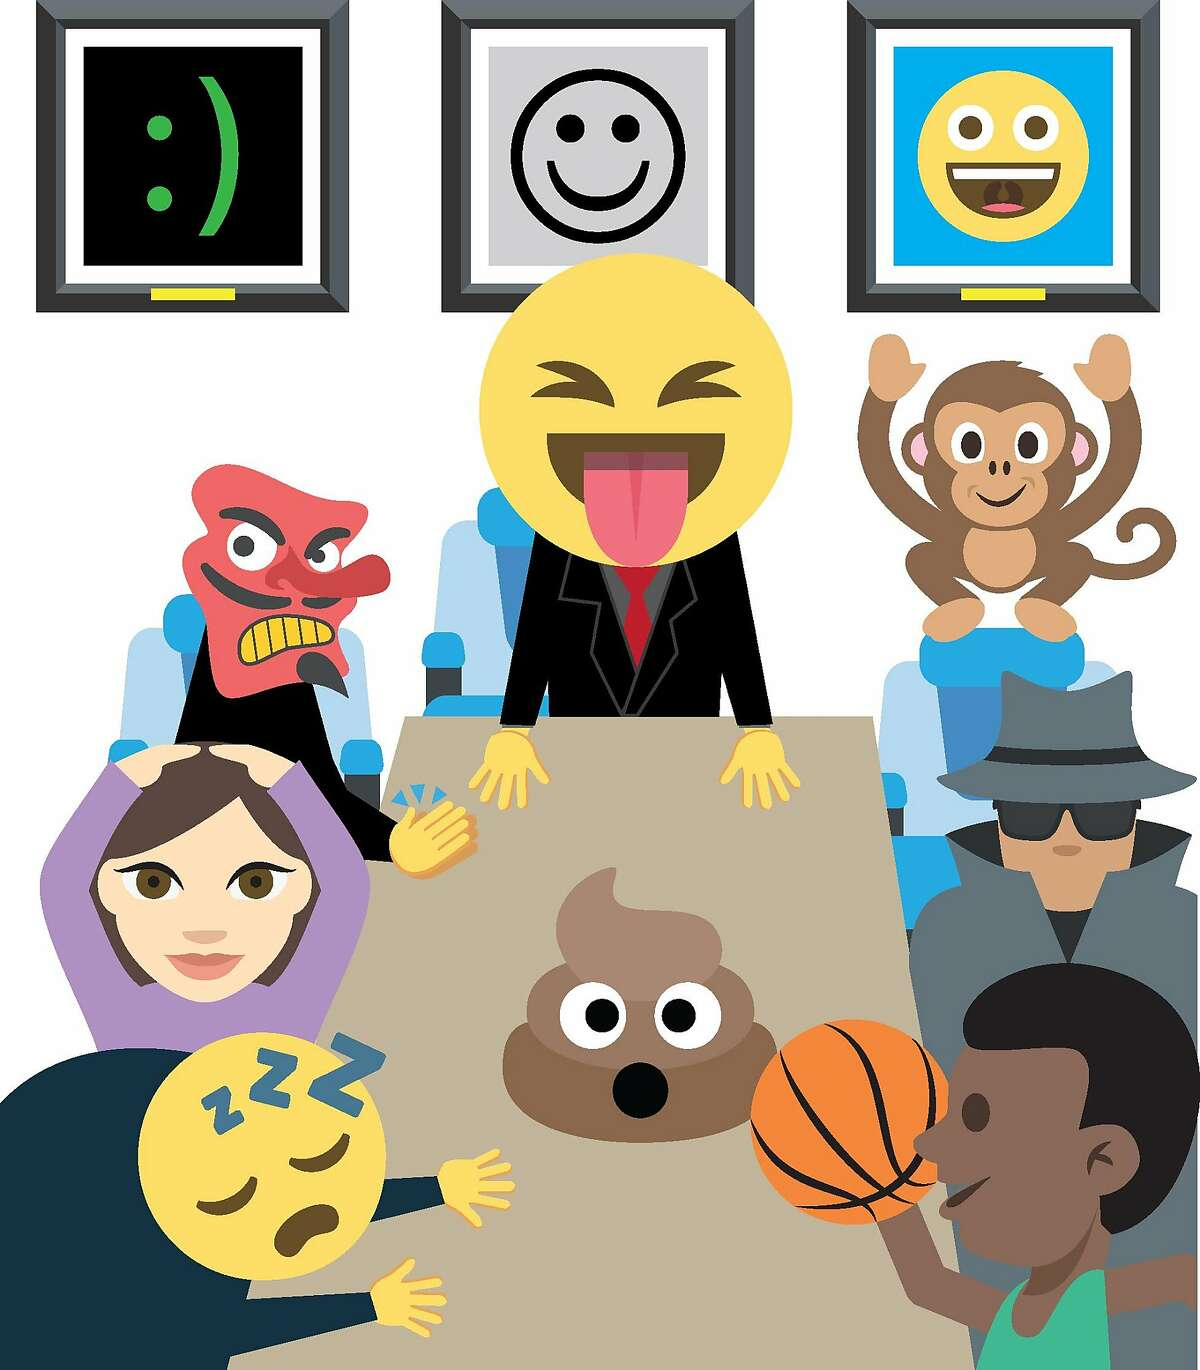 Emojis have become so popular that companies have recognized the symbols as �big marketing opportunities. Kit Kat, for example, wants a Kit Kat emoji. But who decides these things? As it turns out, a group known as Unicode Consortium, dominated by white male executives from Silicon Valley, determines what should be an emoji and what doesn�t. Illustration by Christopher T. Fong / The Chronicle and Emoji One